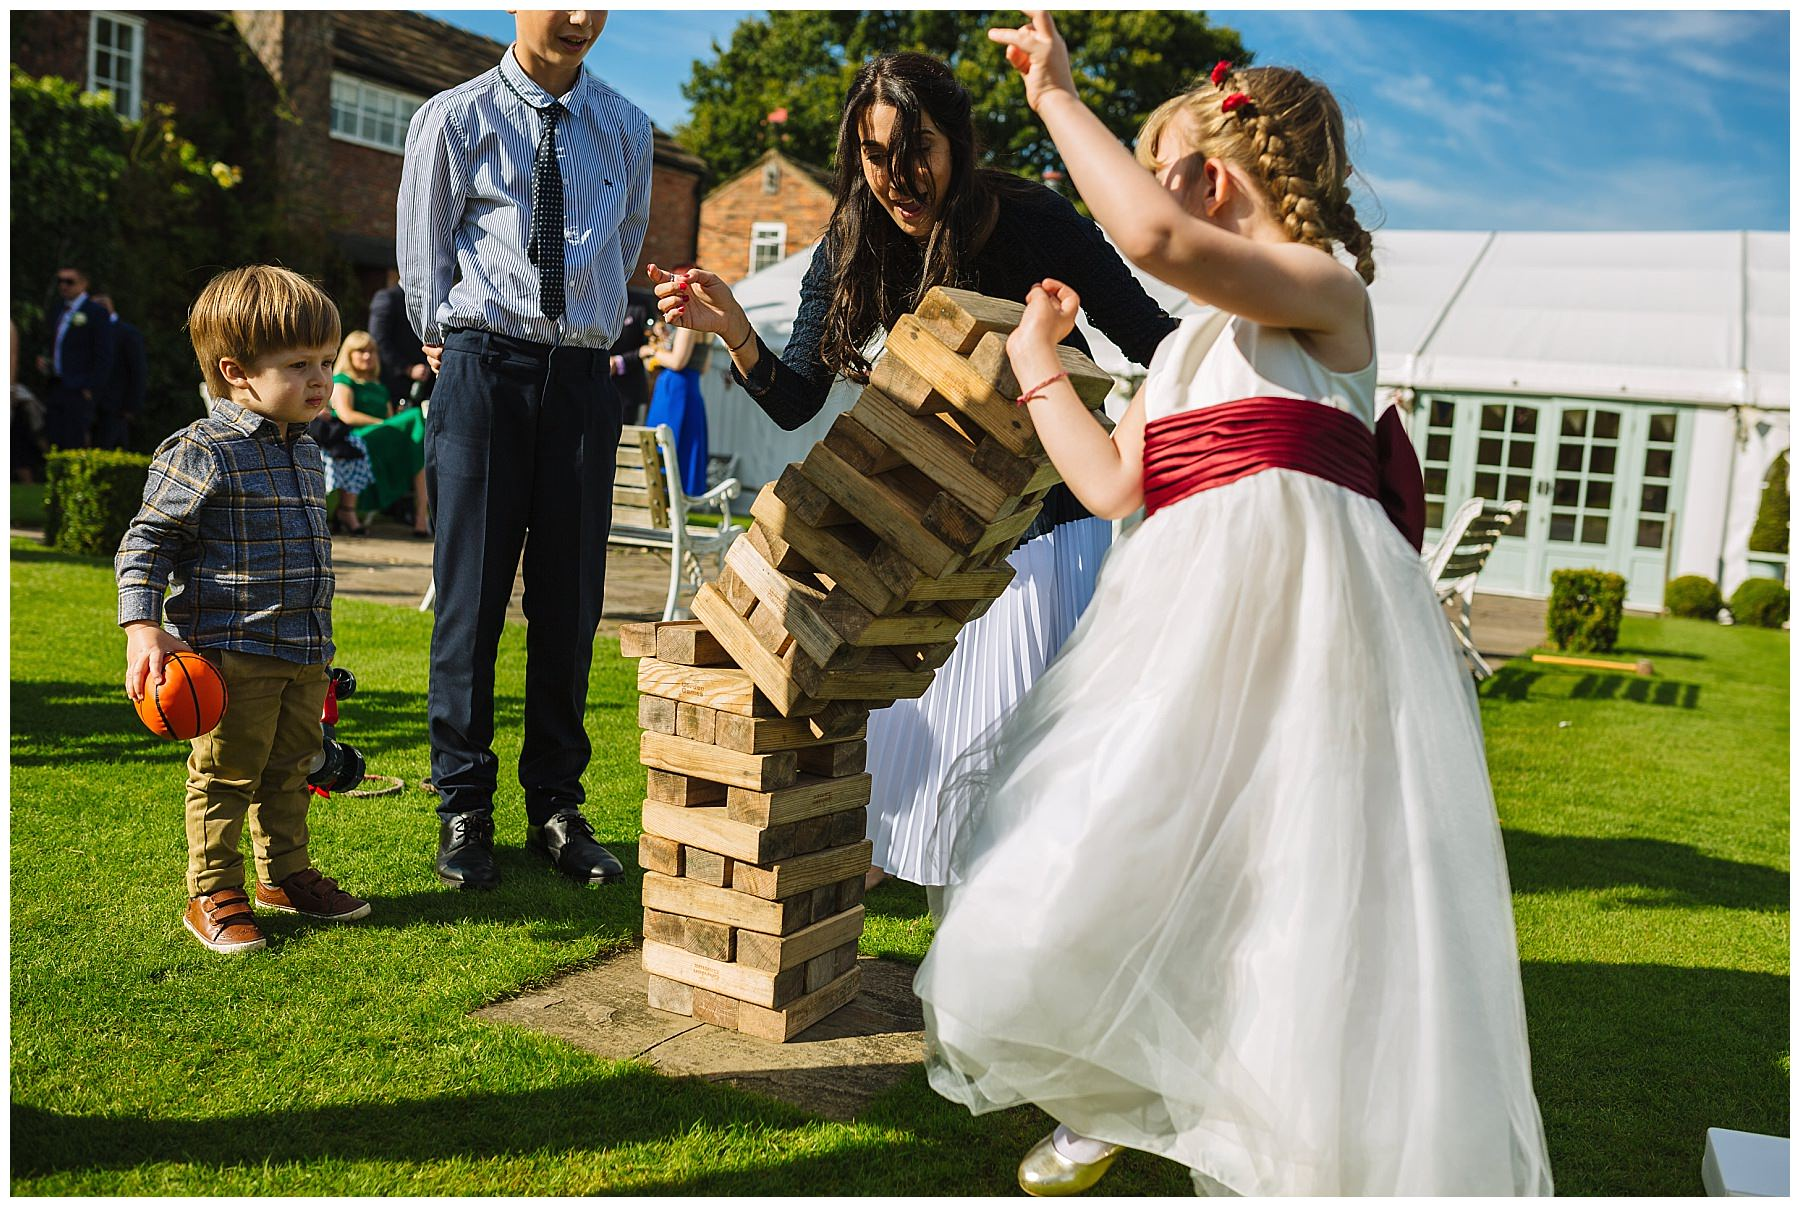 Garden Games at Hilltop Country House